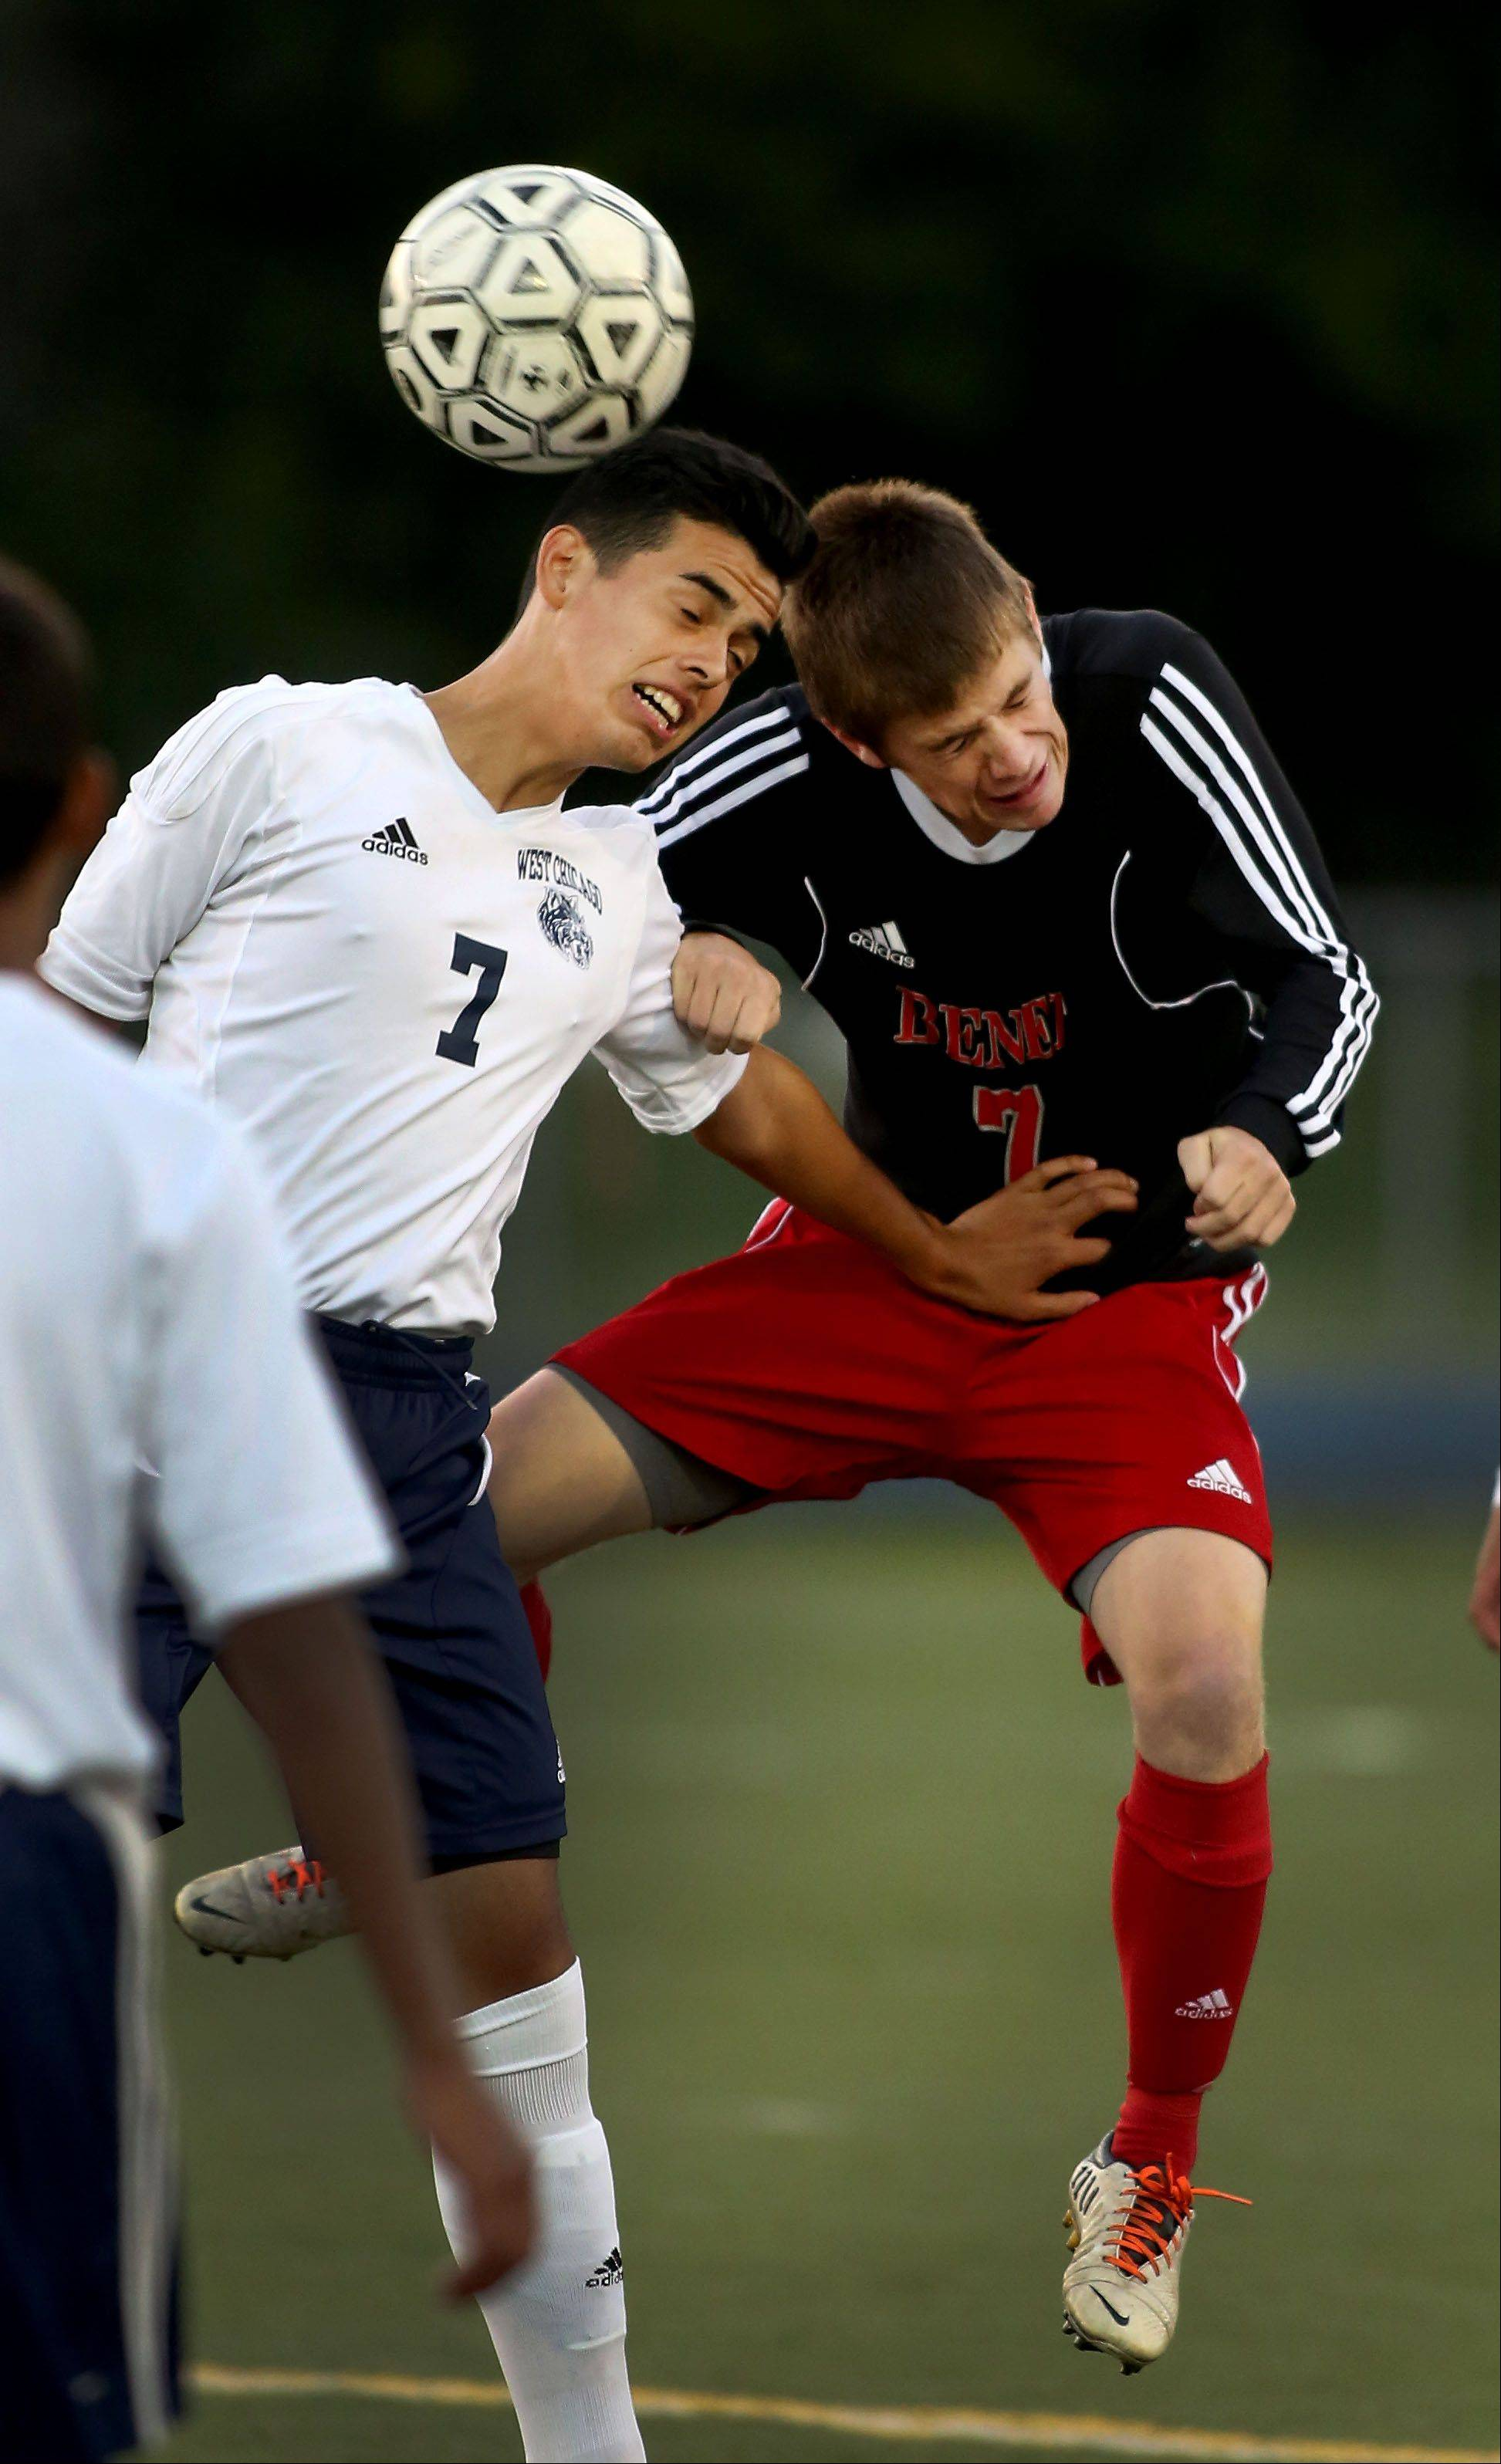 Benet Academy's Sam Knapke, right, heads the ball away from West Chicago's Alexis Quezada during boys soccer action on Monday.